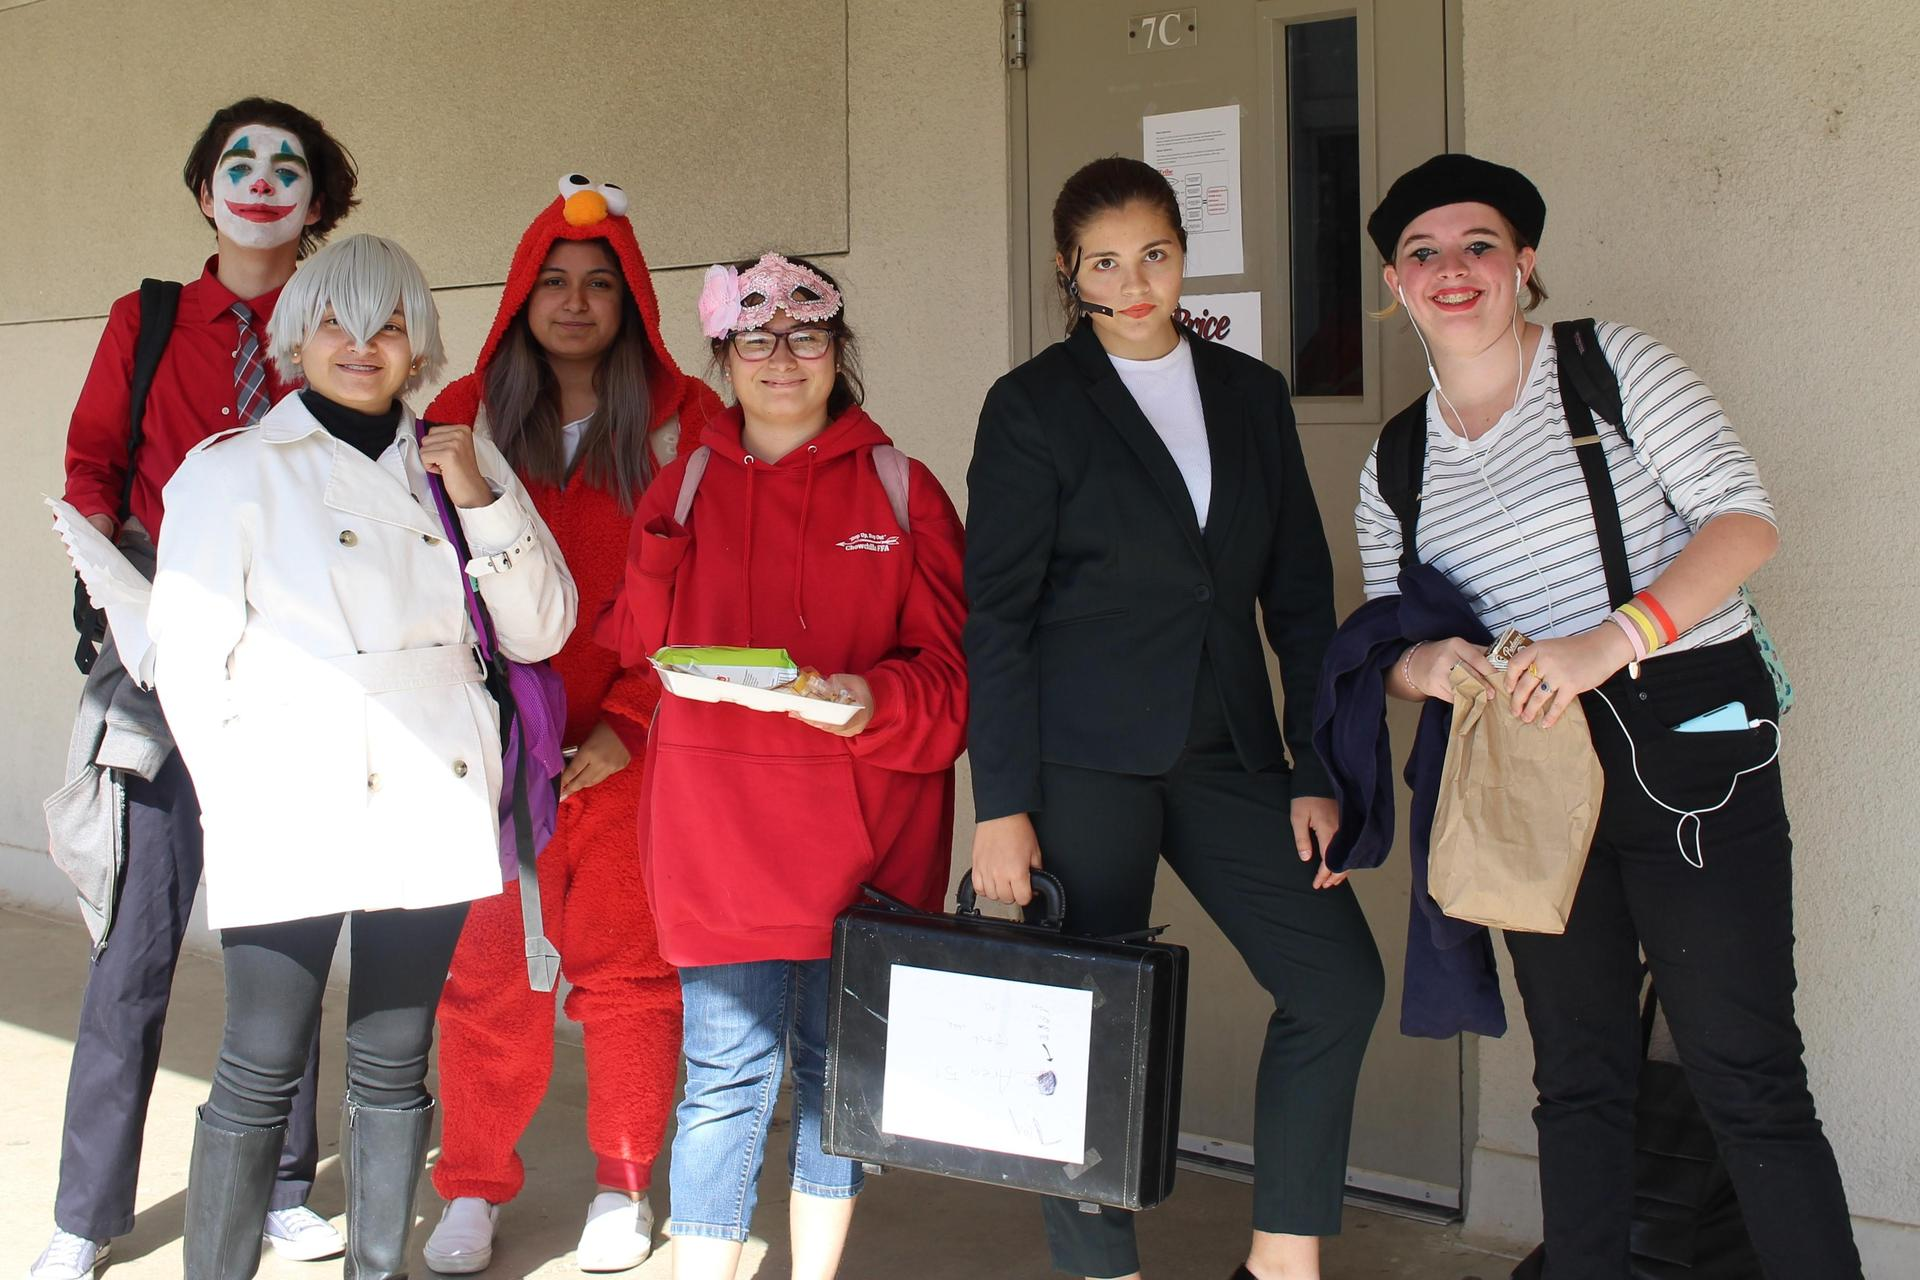 David Patino as the joker, Leanna Perales as an anime character, Mitzy Vasquez-Martinez as Elmo, Jamie Borbon as masquerade, Hope McCue as an F.B.I. agent, Isabel Rogers as a mime